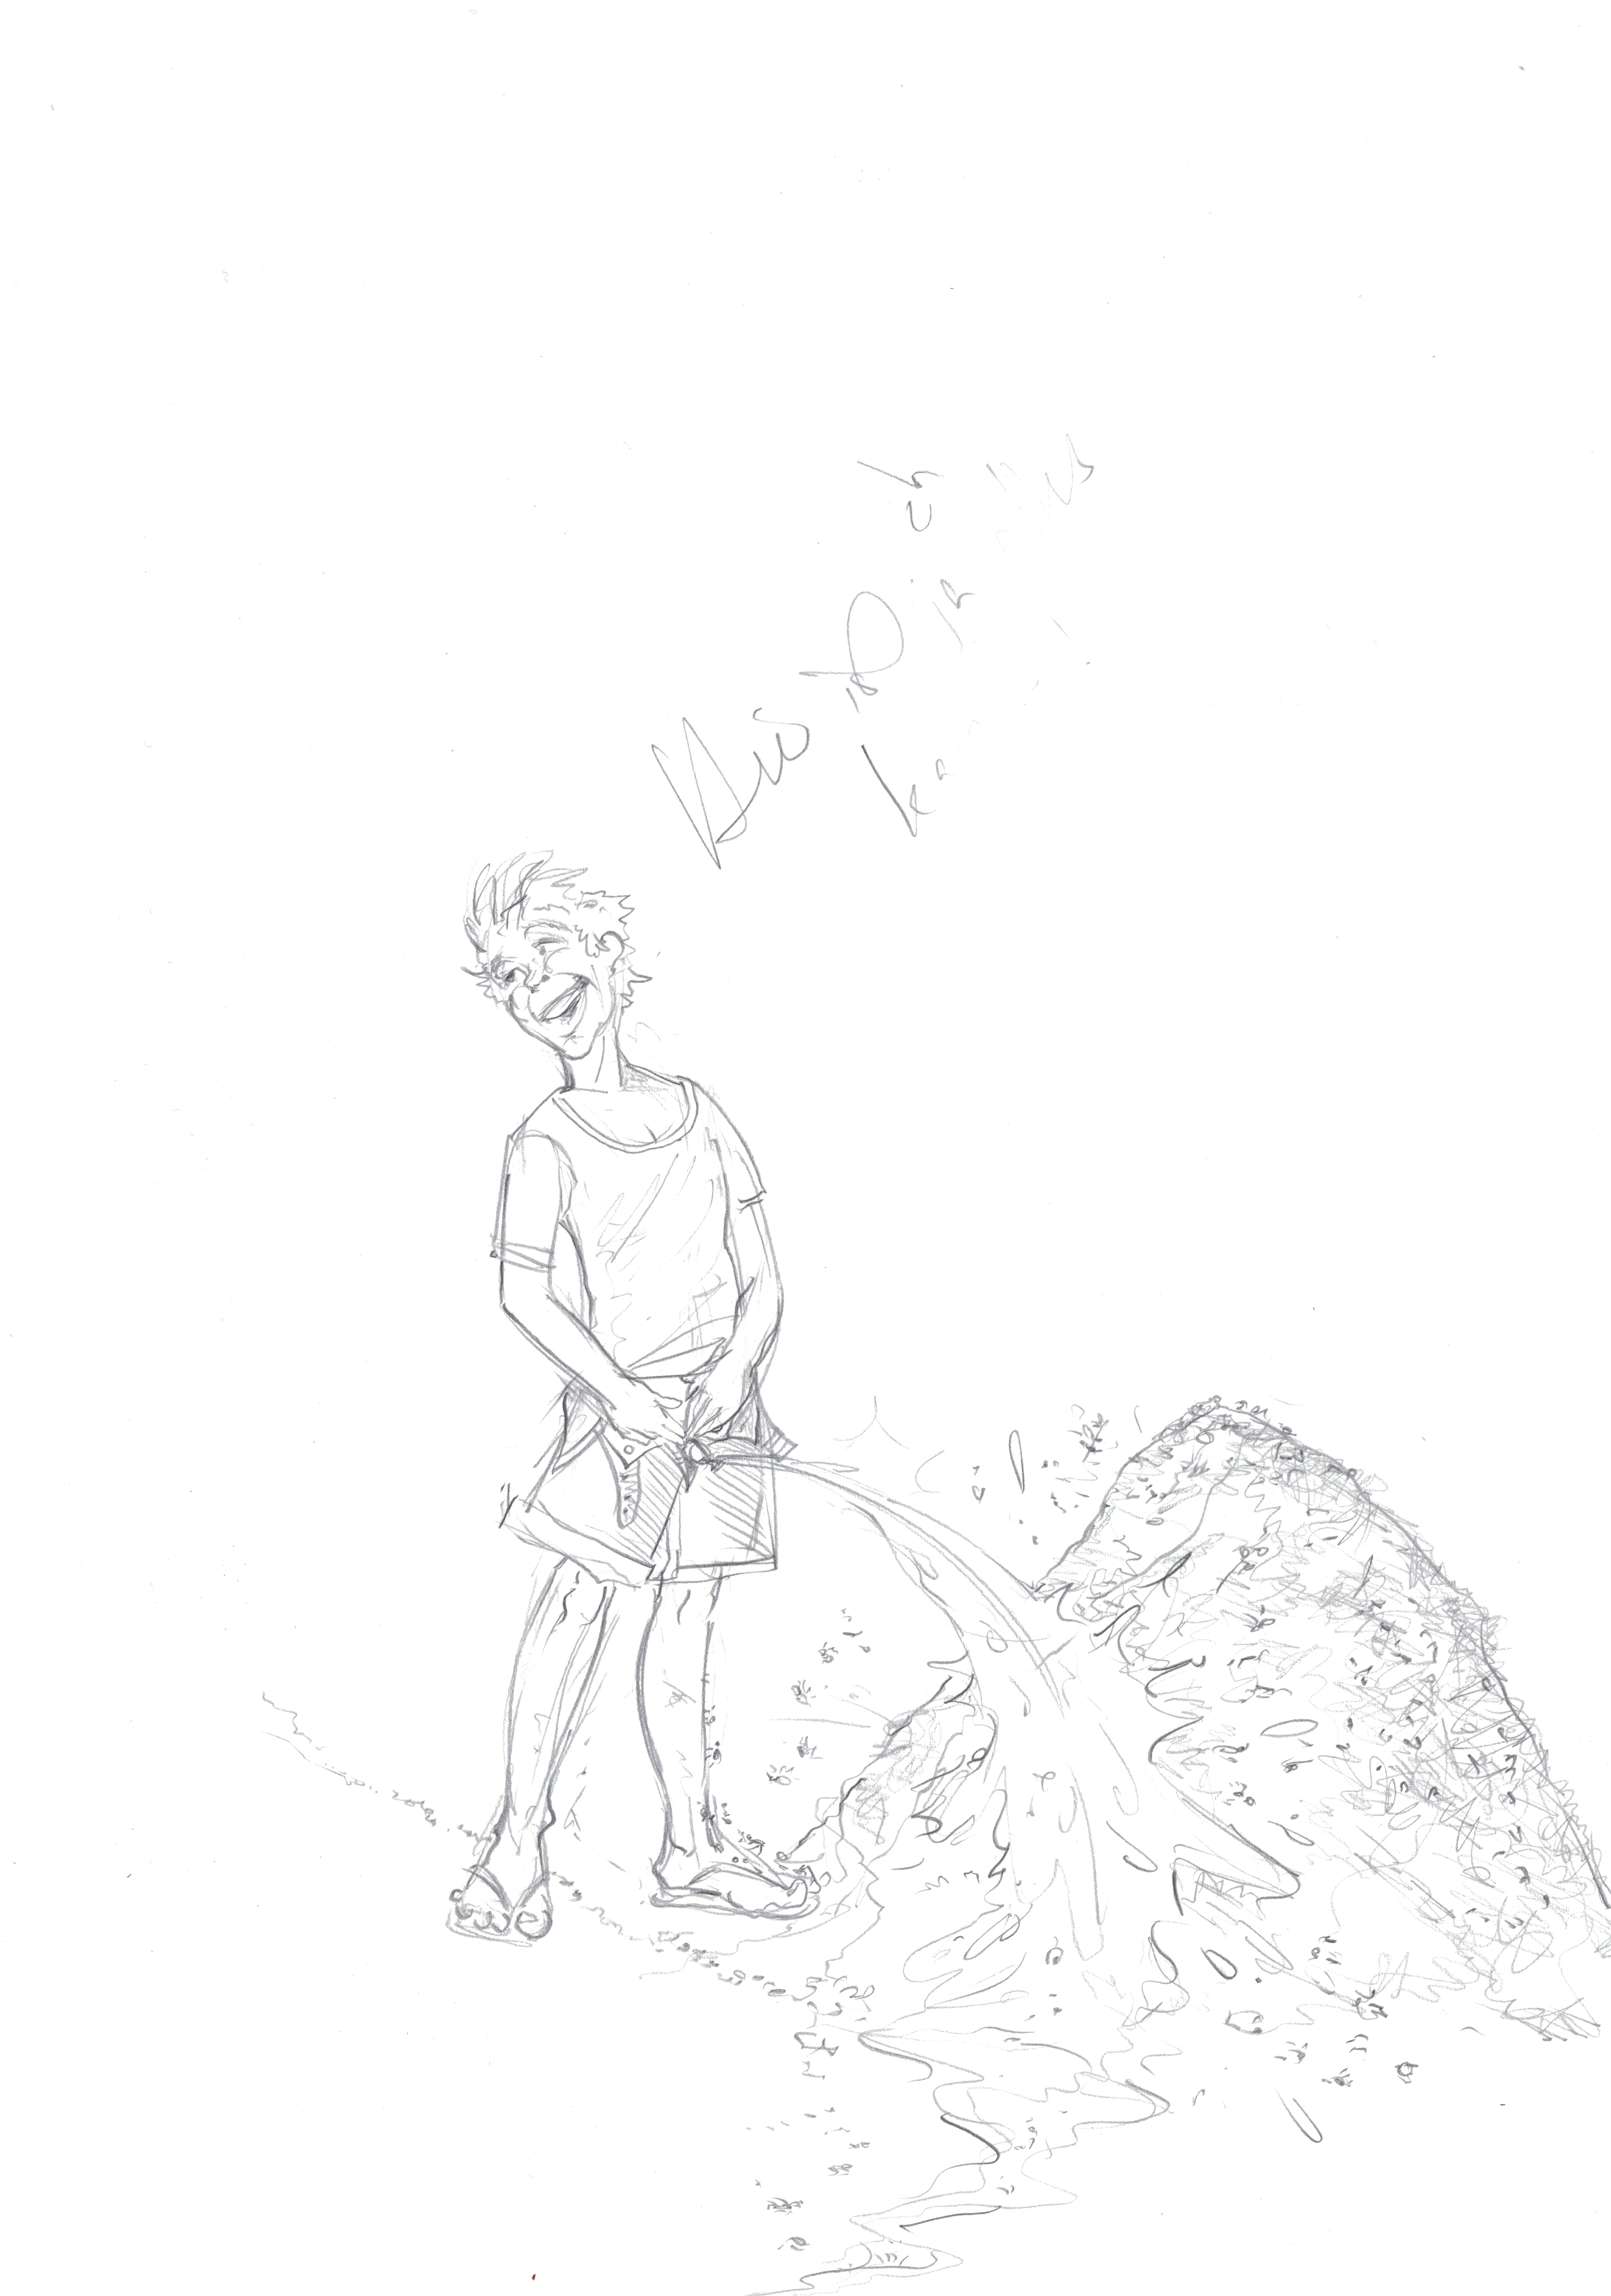 Boy peeing on anthill / pencil on paper